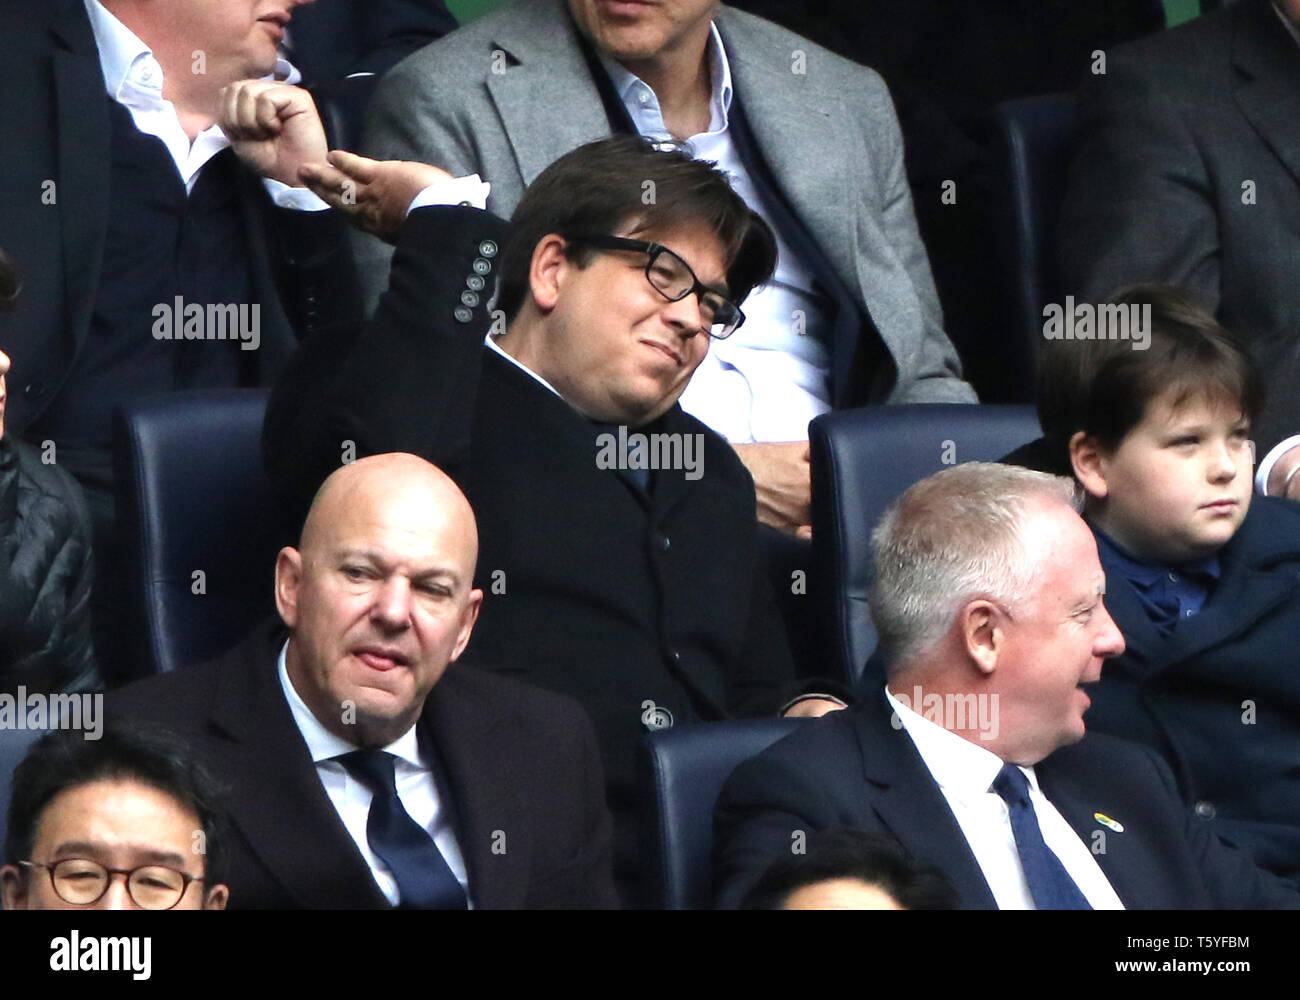 London, UK. 27th Apr 2019. Comedian Michael McIntyre shows his frustration at the Tottenham Hotspur v West Ham United English Premier League match, at The Tottenham Hotspur Stadium, London, UK on April 27, 2019. **Editorial use only, license required for commercial use. No use in betting, games or a single club/league/player publications** Credit: Paul Marriott/Alamy Live News - Stock Image